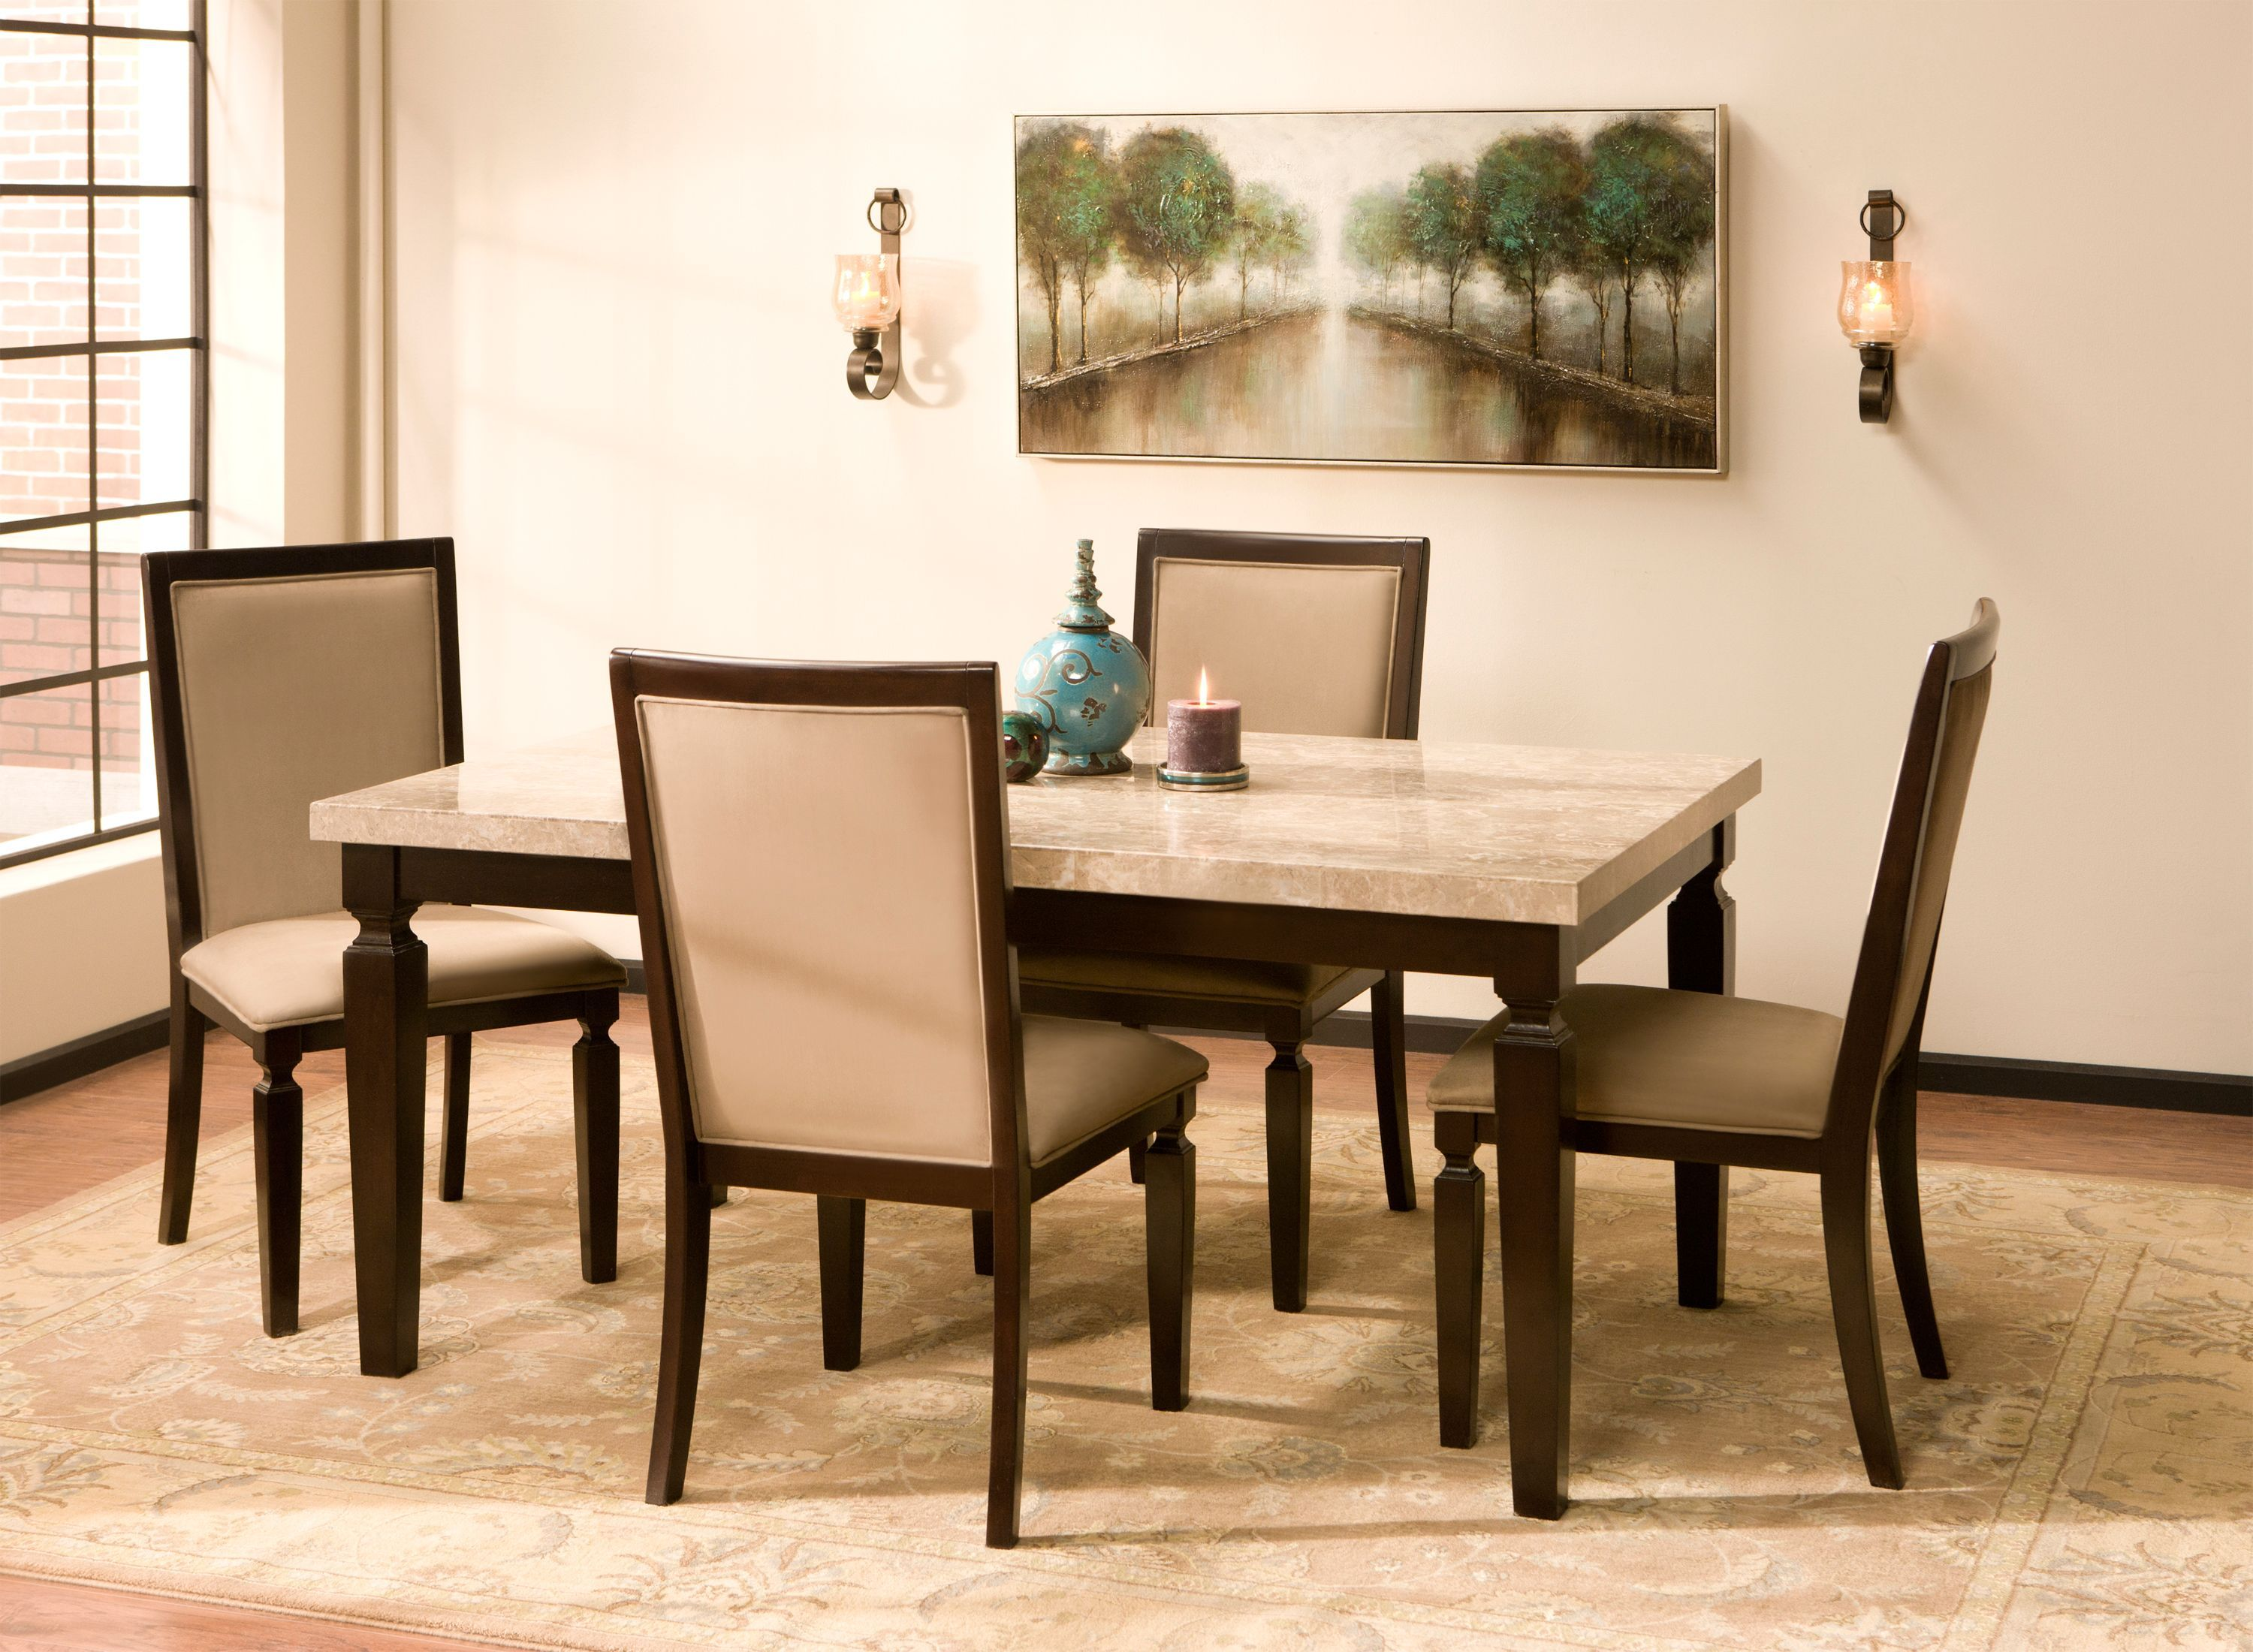 Rogue Marble Dining Set | This 5 Piece Marble Dining Set Will Make A  Beautiful